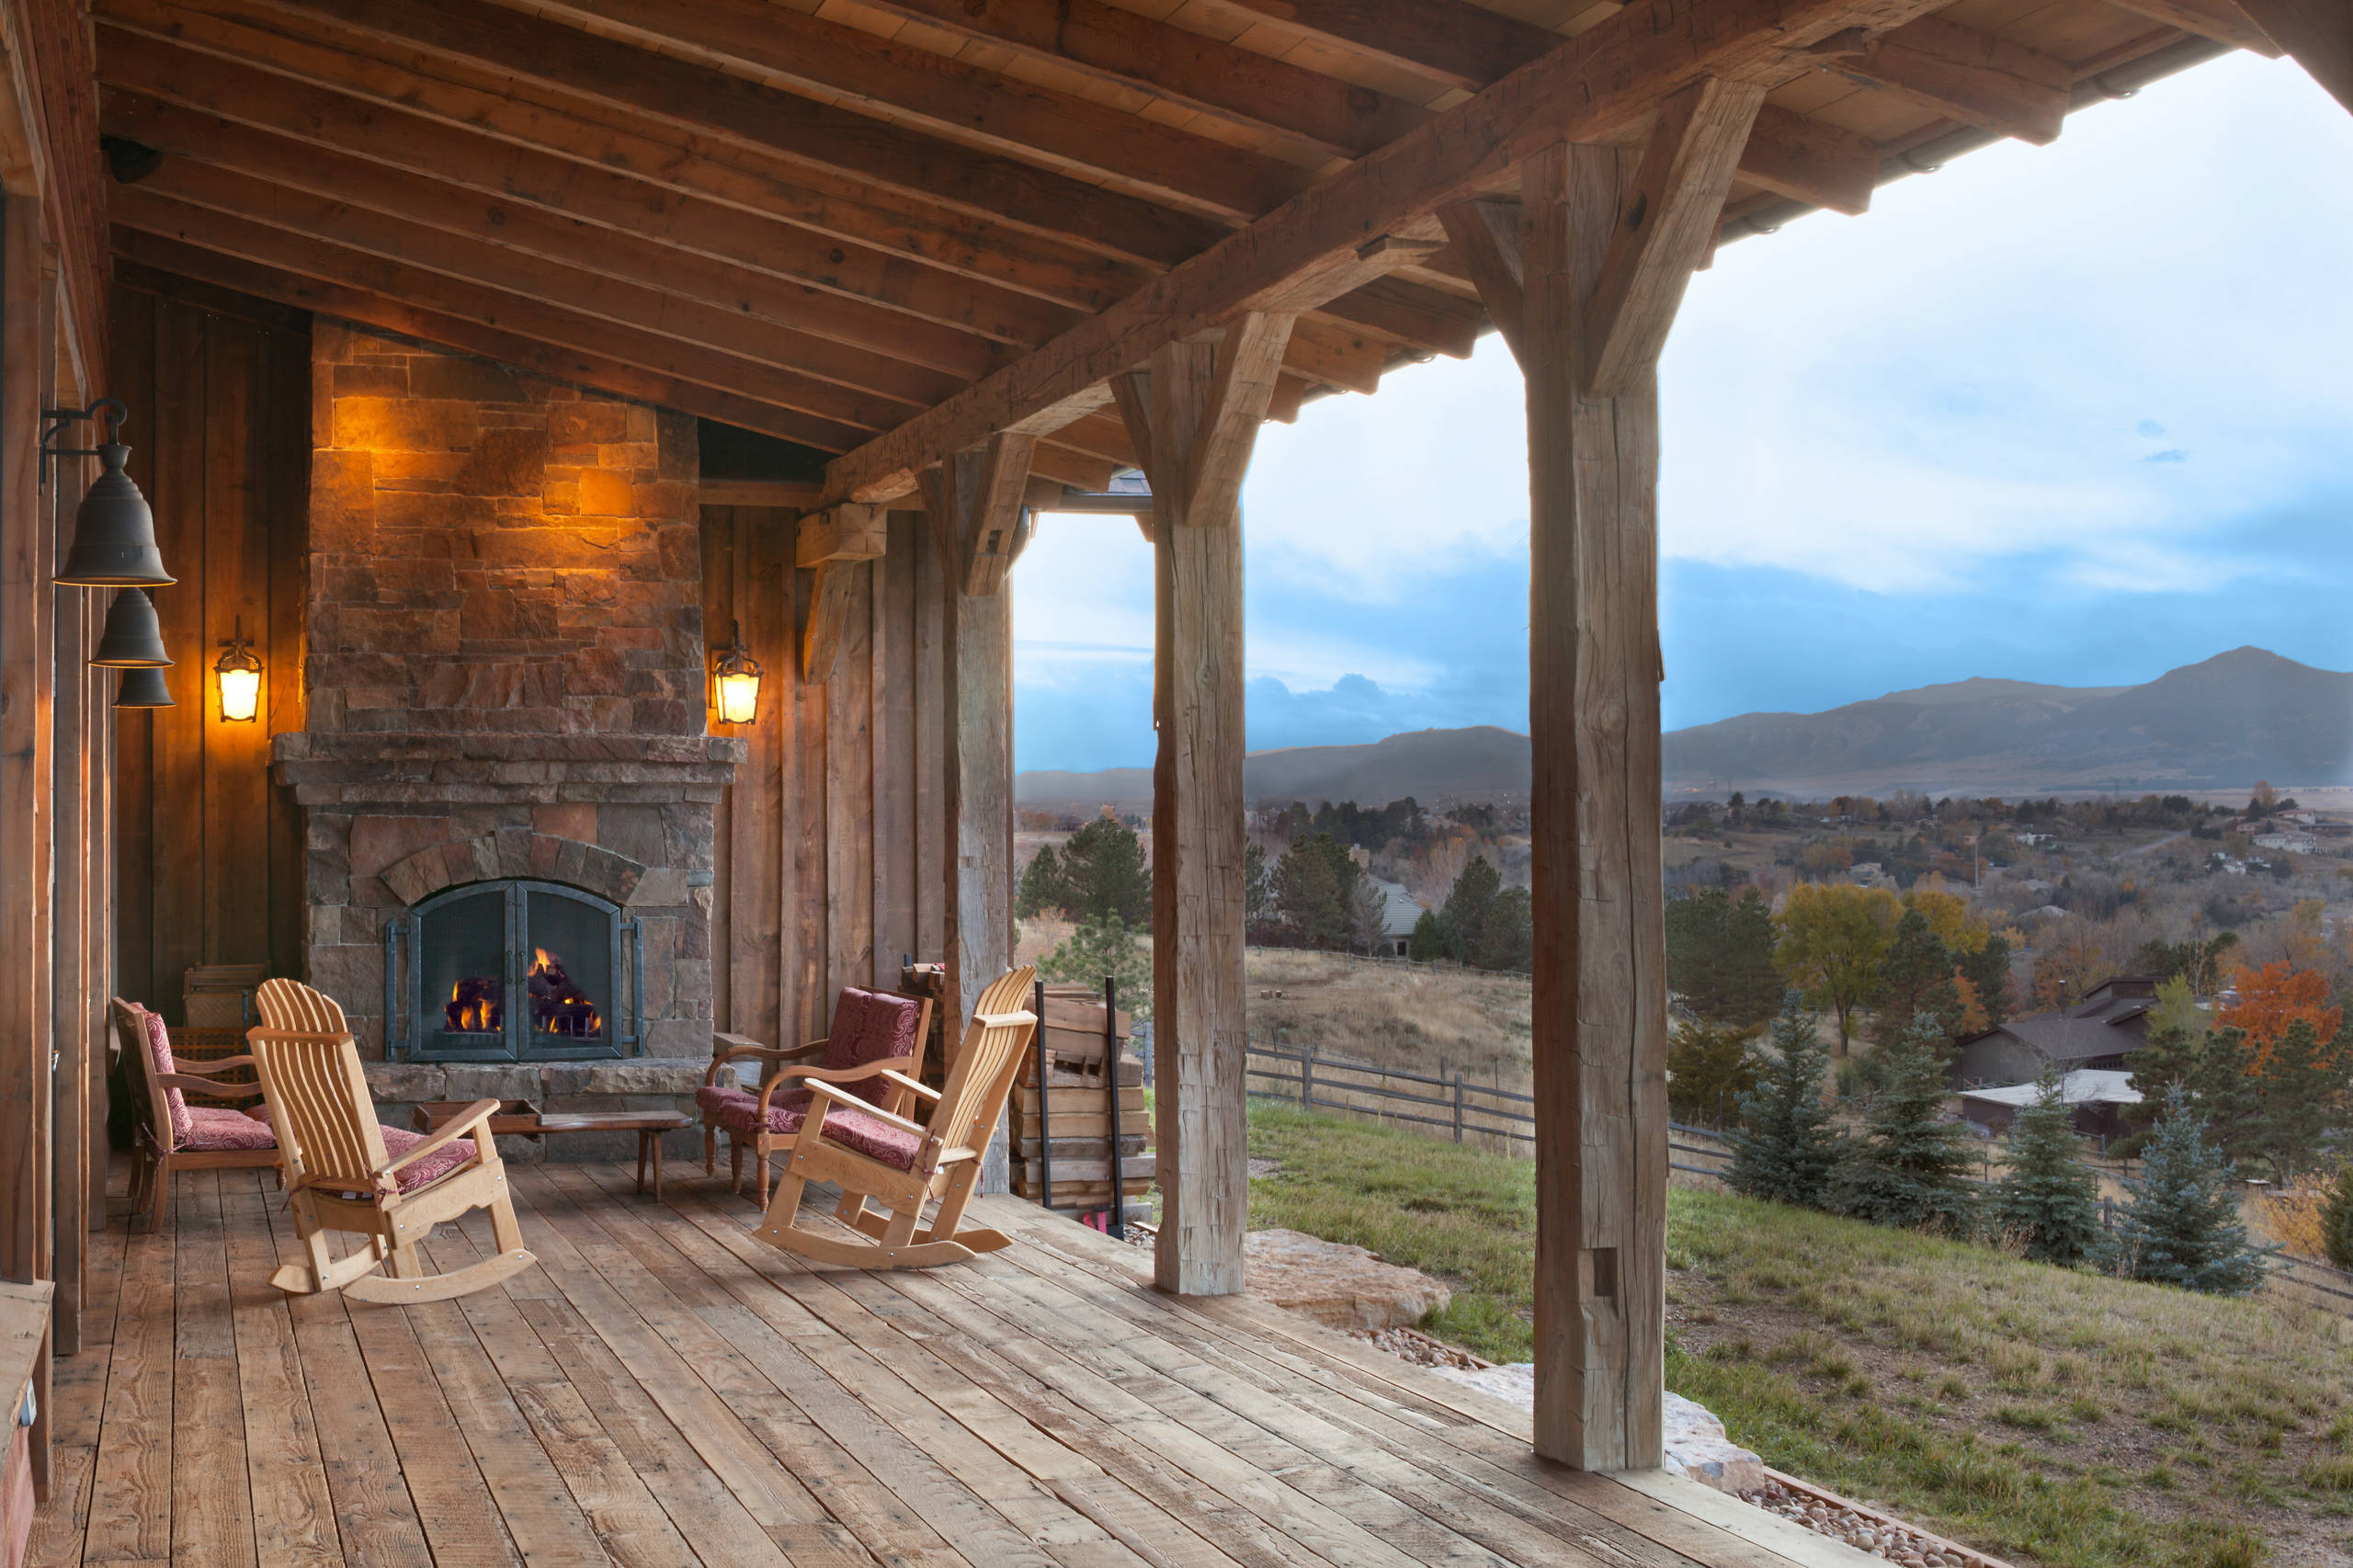 17 Unbelievable Rustic Porch Designs That Will Make Your ... on Back Deck Ideas For Ranch Style Homes id=84974